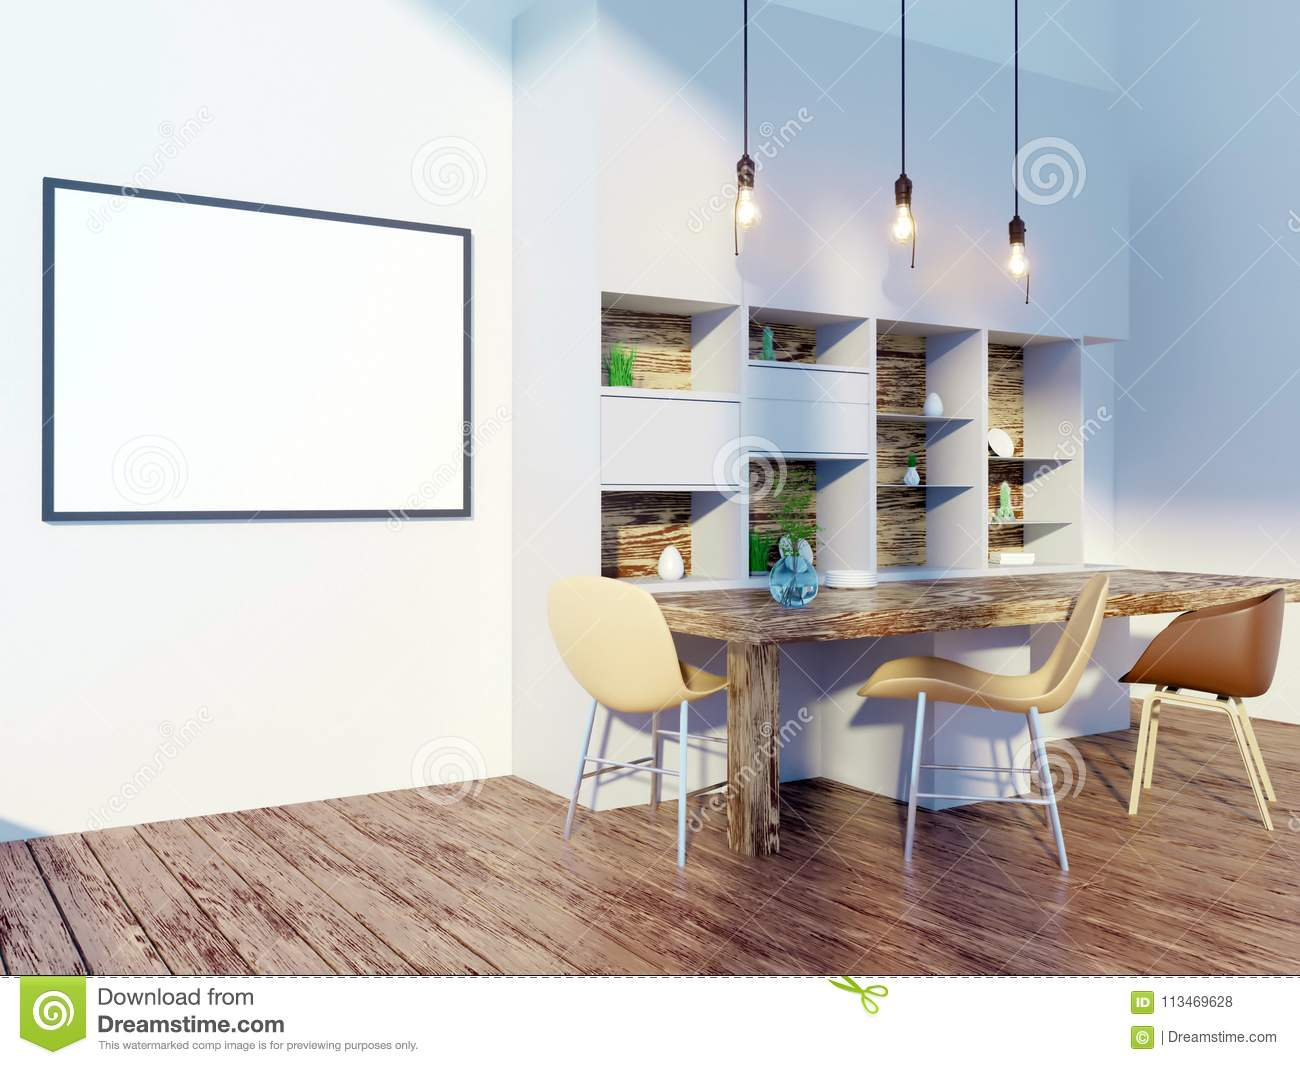 Dining Room And Kitchen Interior Wall Mock Up On White Background 3D Rendering Illustration Template Texture Wood Wooden